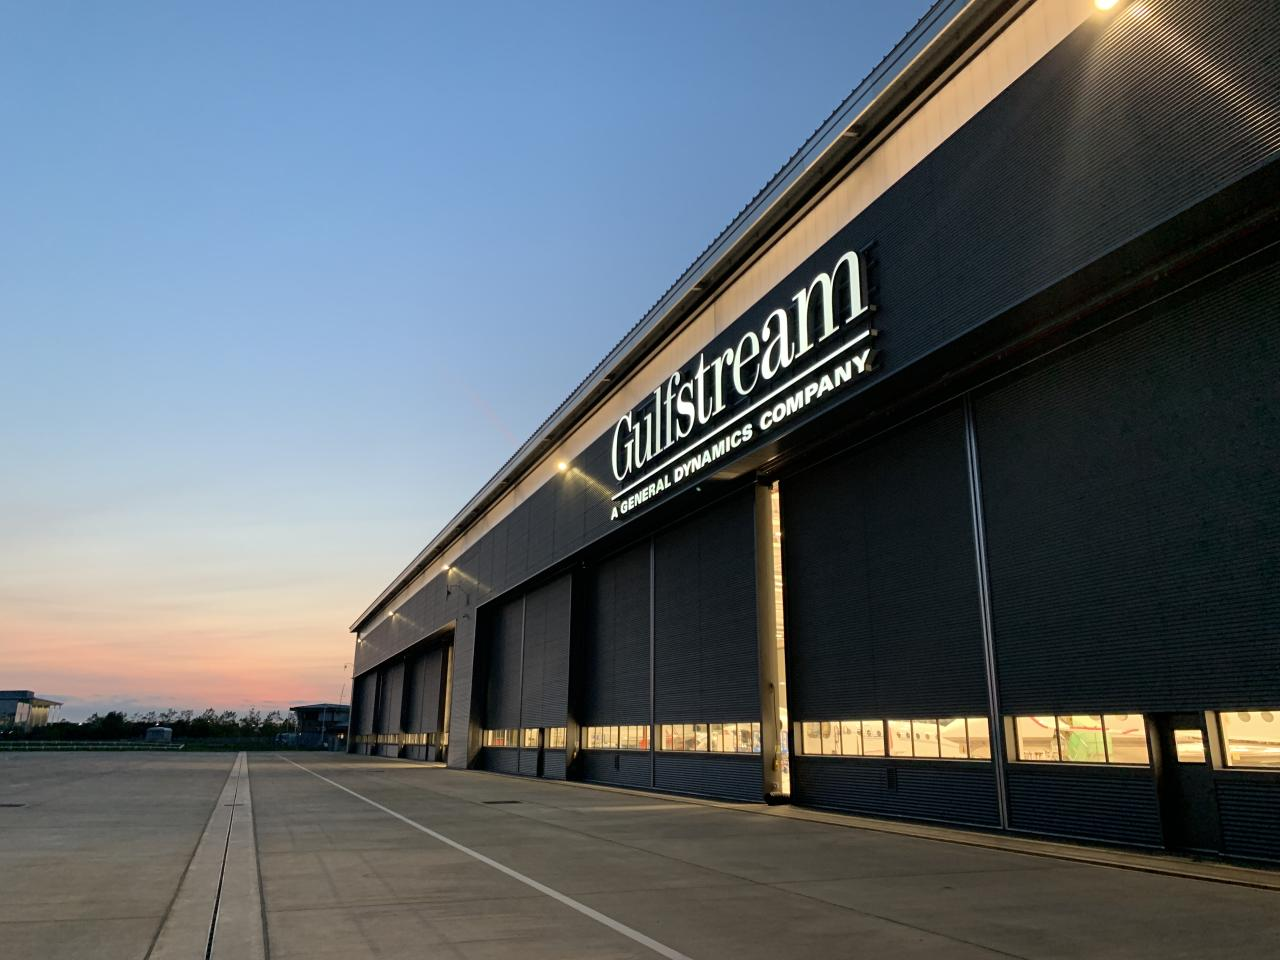 Gulfstream Aerospace at Farnborough Airport – 3 sets of Esavian Type 126 Power operated steel sliding doors – each set of doors is in four equal leaves –2020